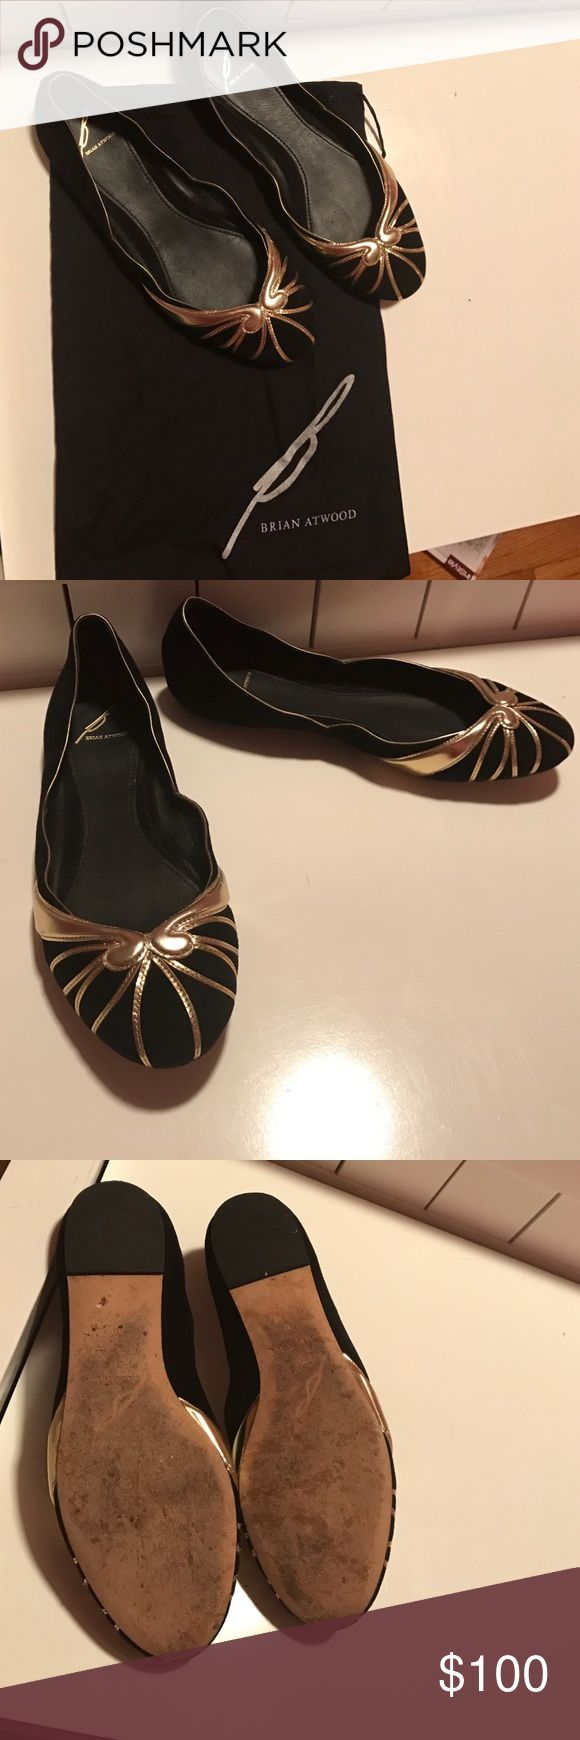 B Brian Atwood Black Velvet and Gold Flats B Brian Atwood Black Velvet and Gold Flats - gently worn, size 8 B Brian Atwood Shoes Flats & Loafers